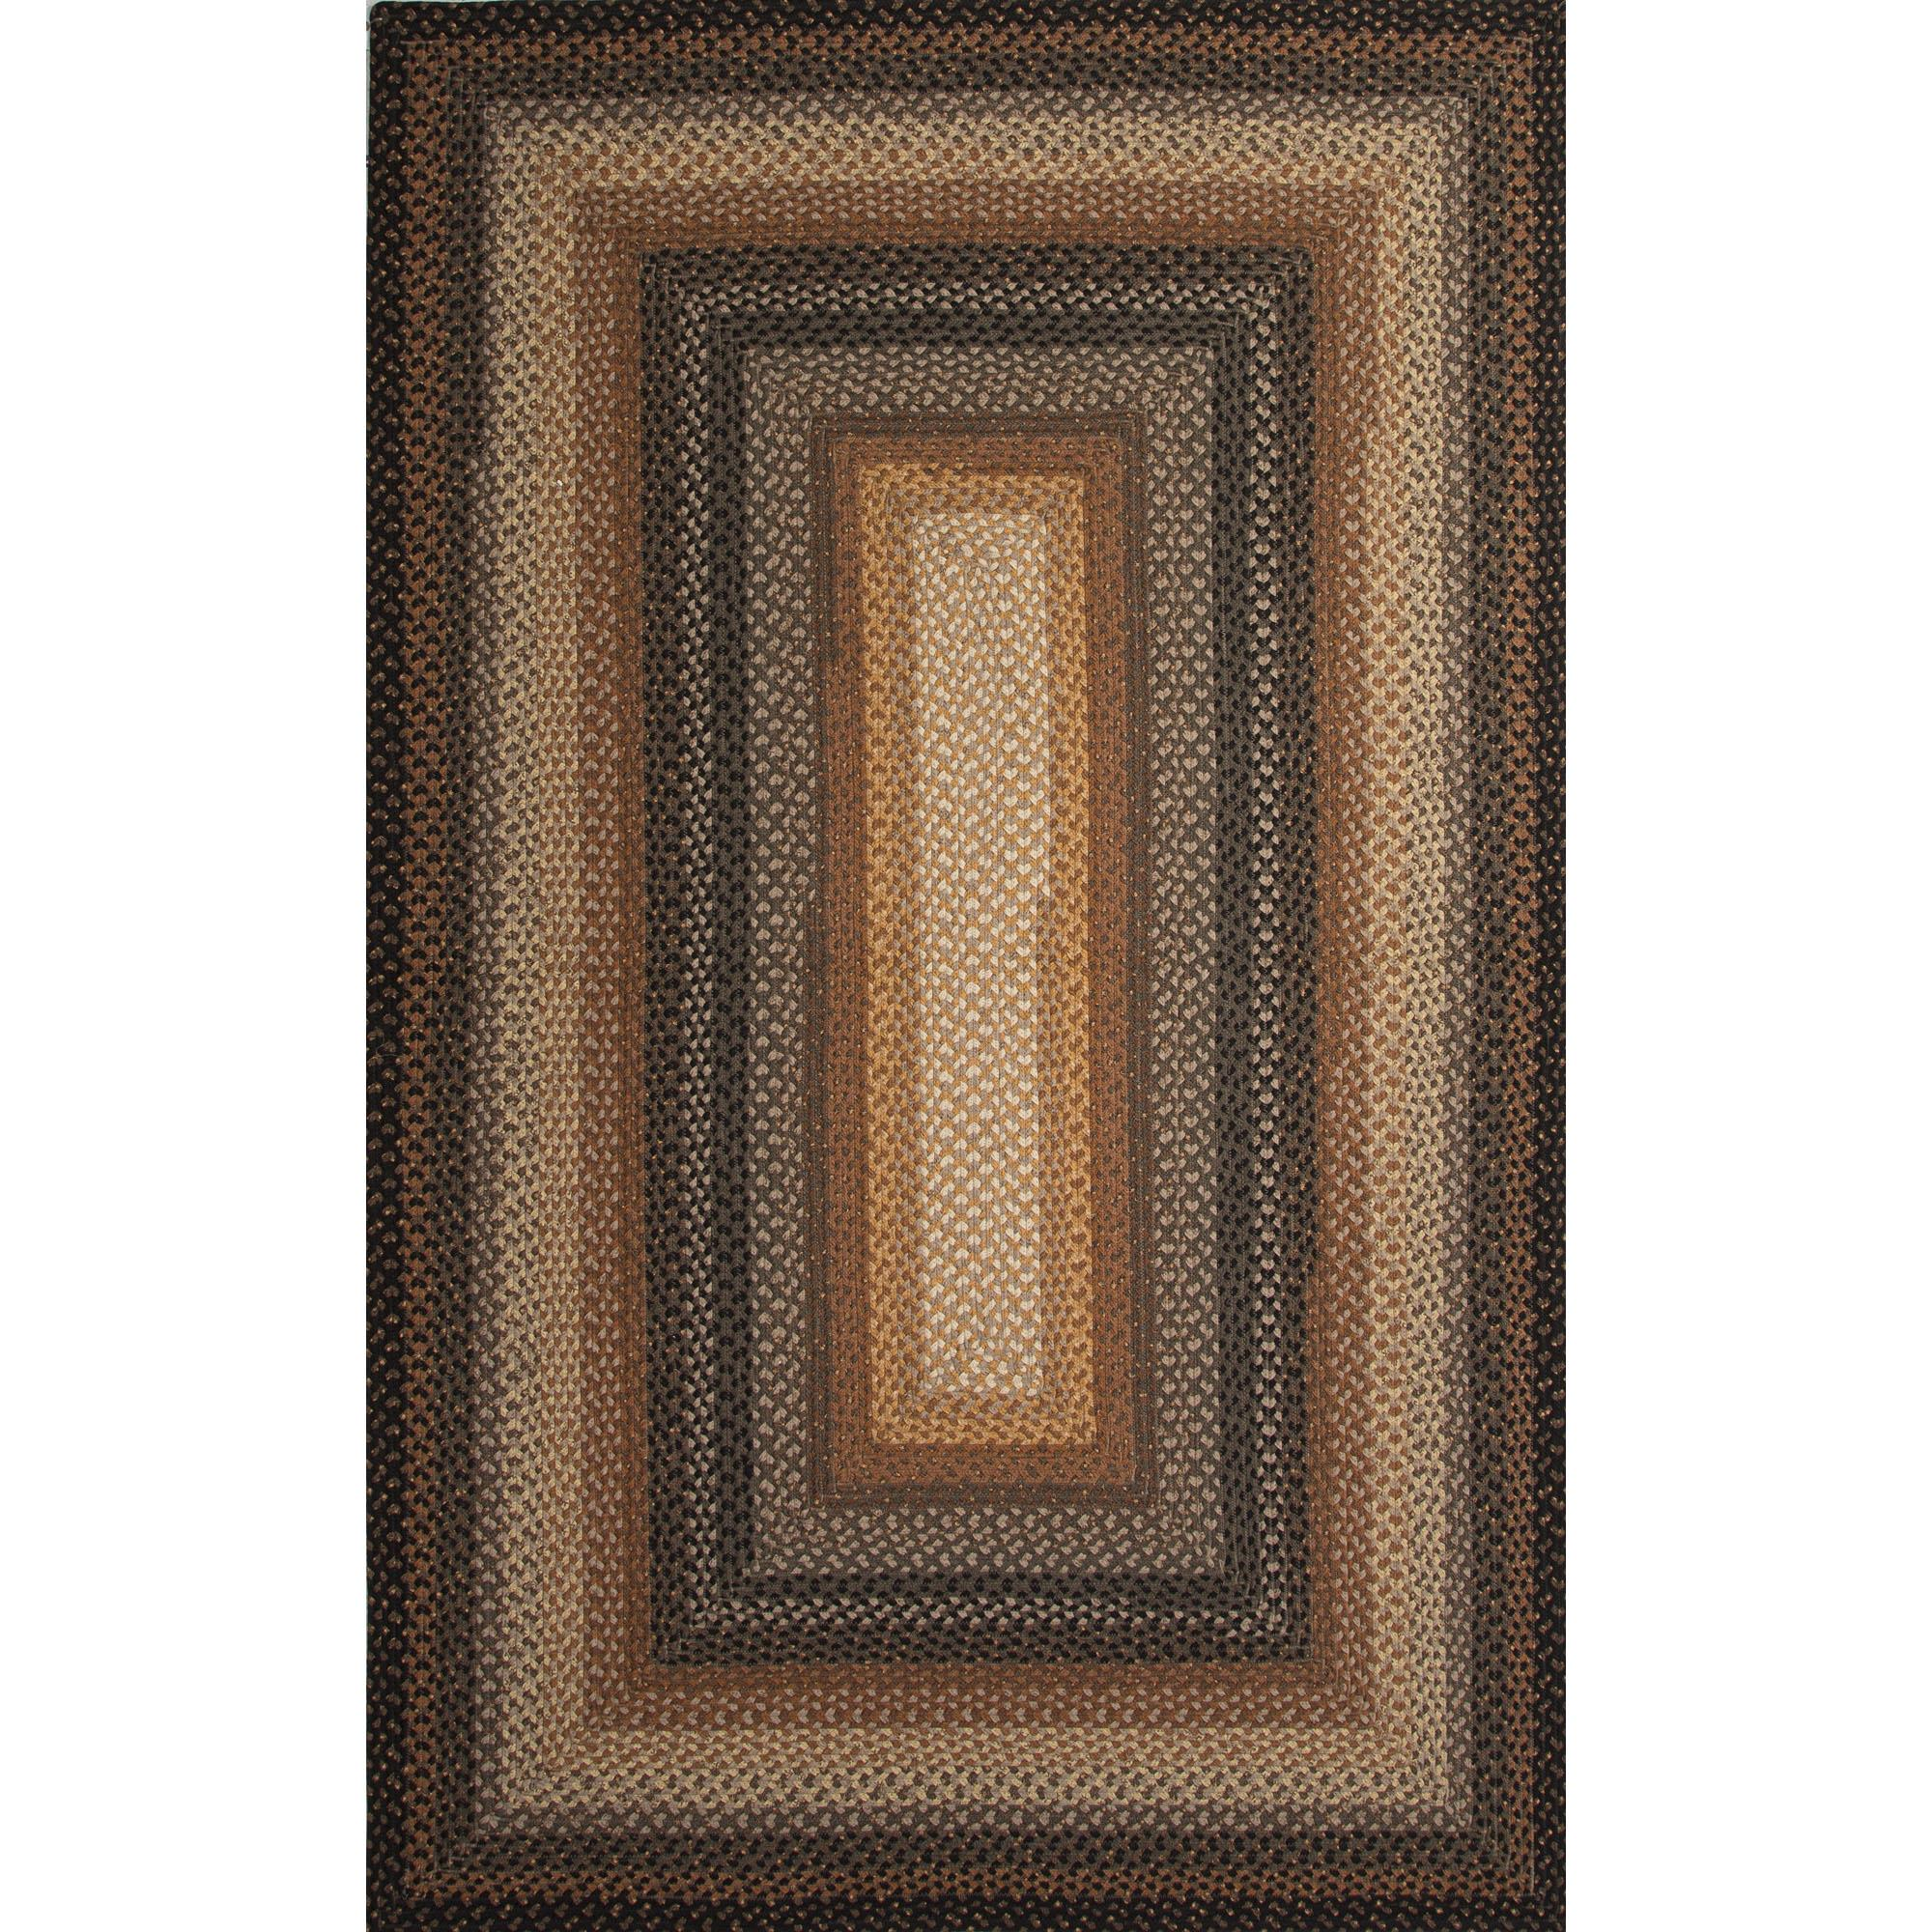 JAIPUR Rugs Cotton Braided Rugs 6 x 9 Rug - Item Number: RUG119545